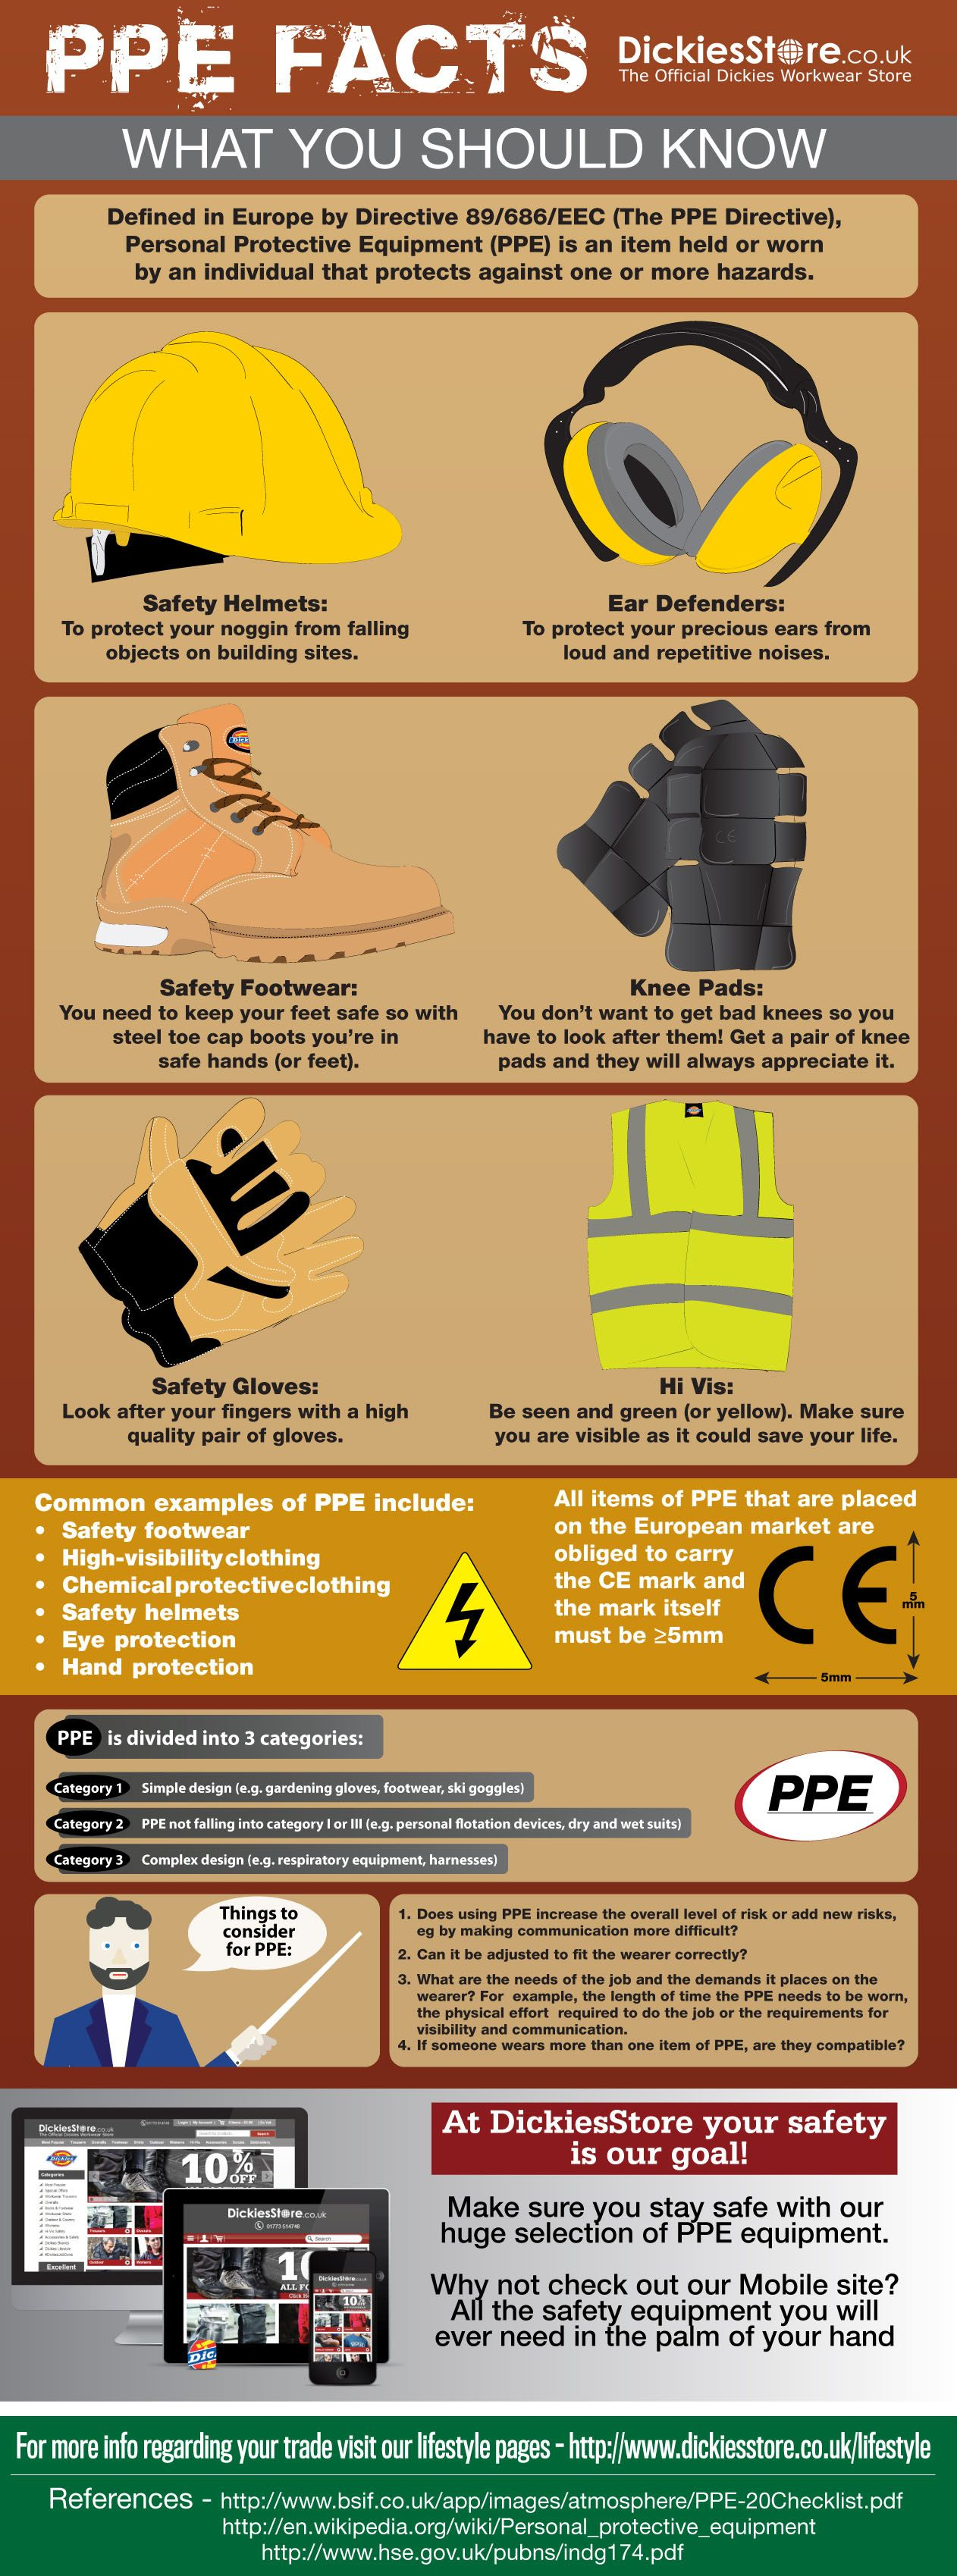 #PPE Facts | Workplace safety, Occupational health and safety